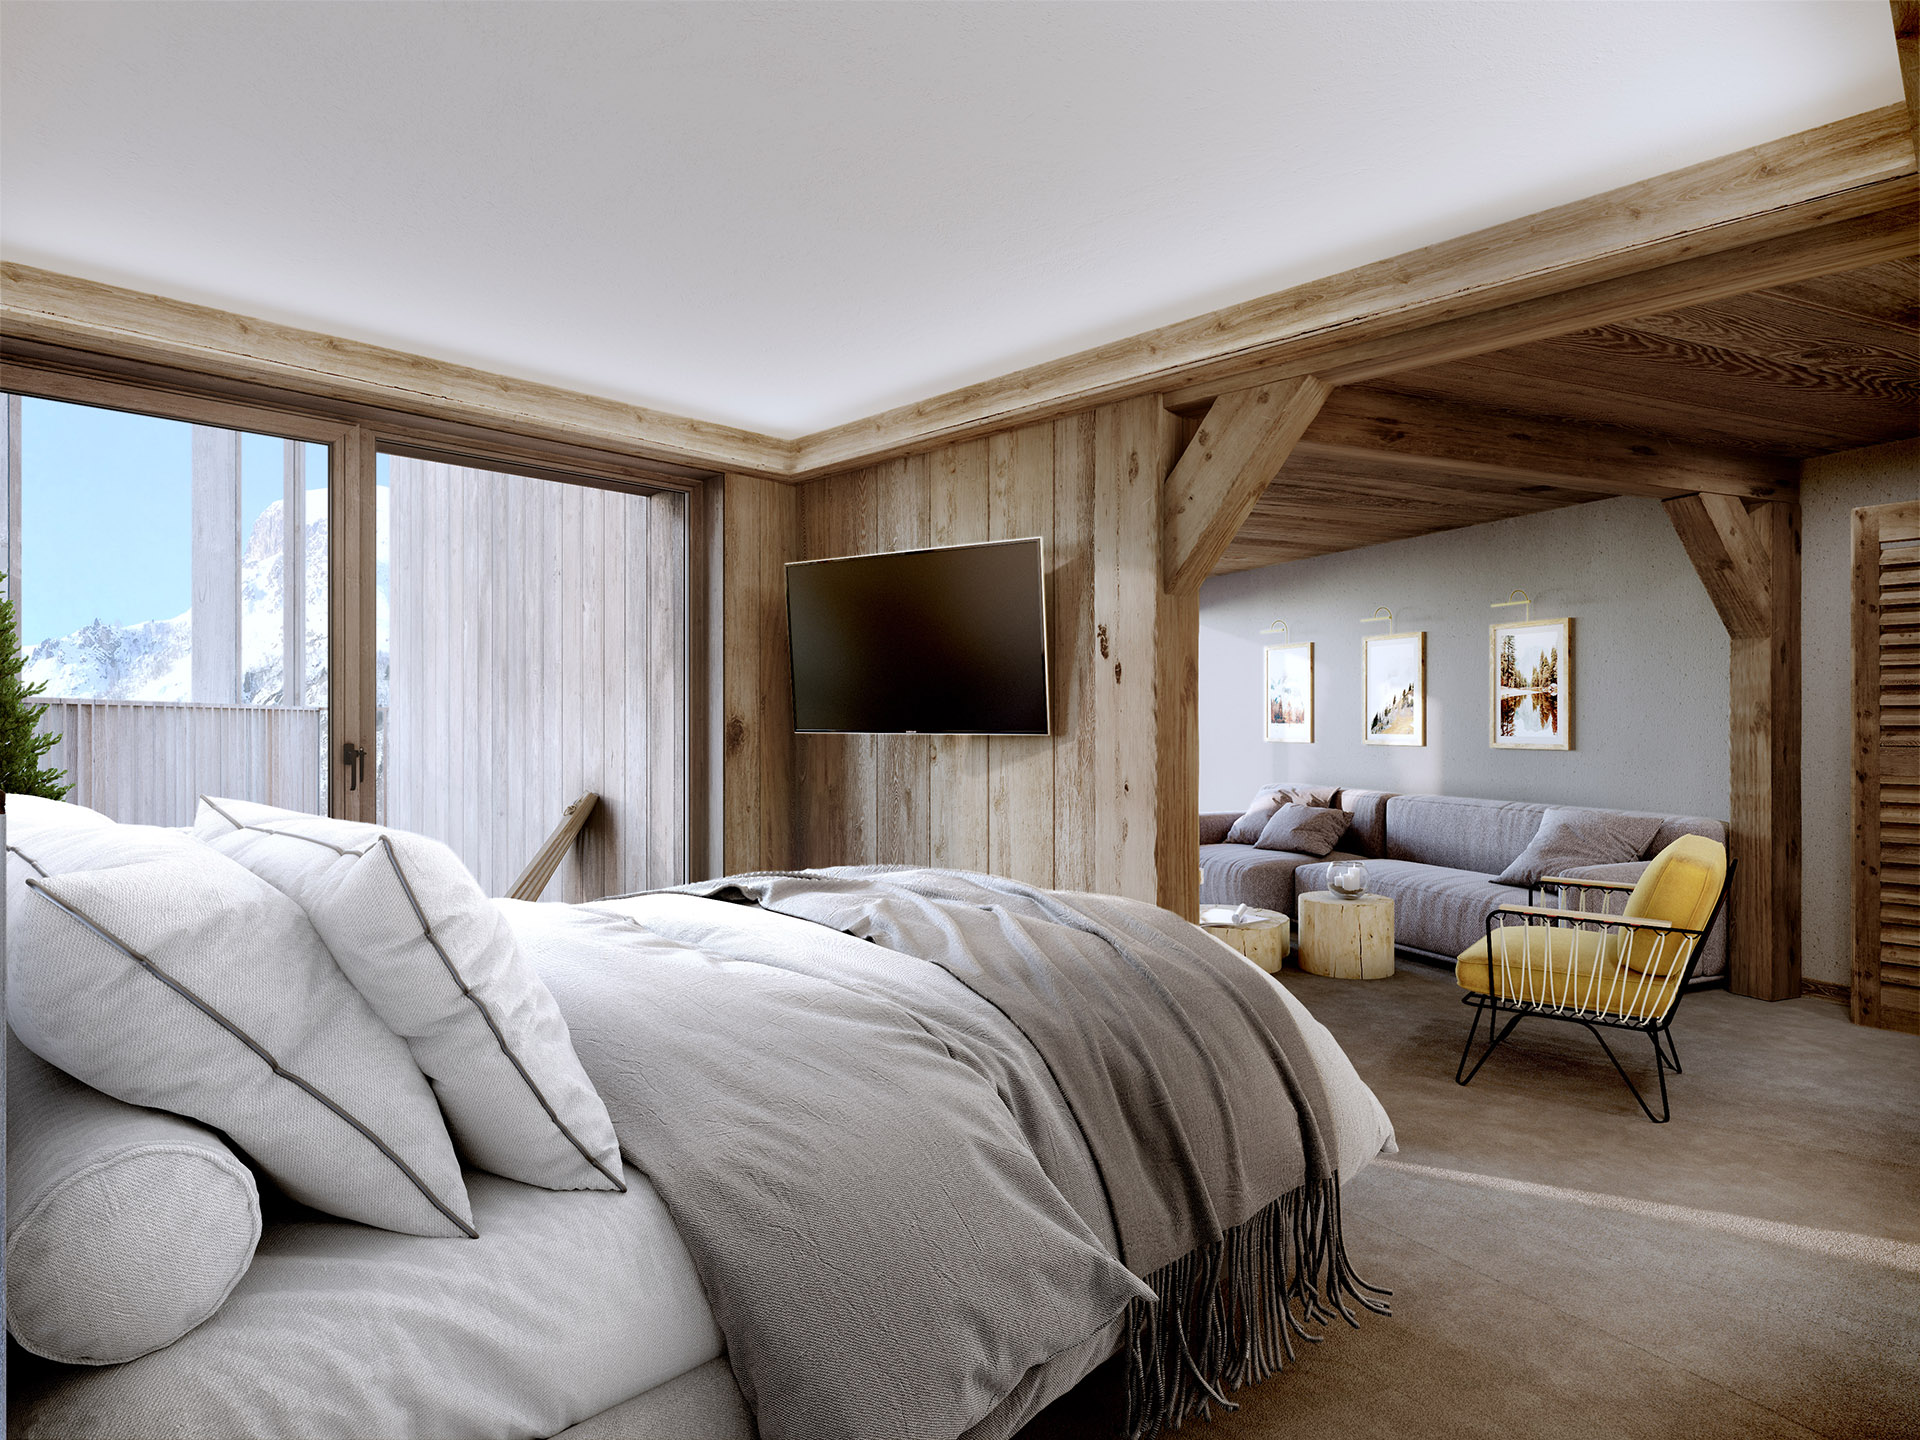 3D image of a hotel room in a mountain chalet